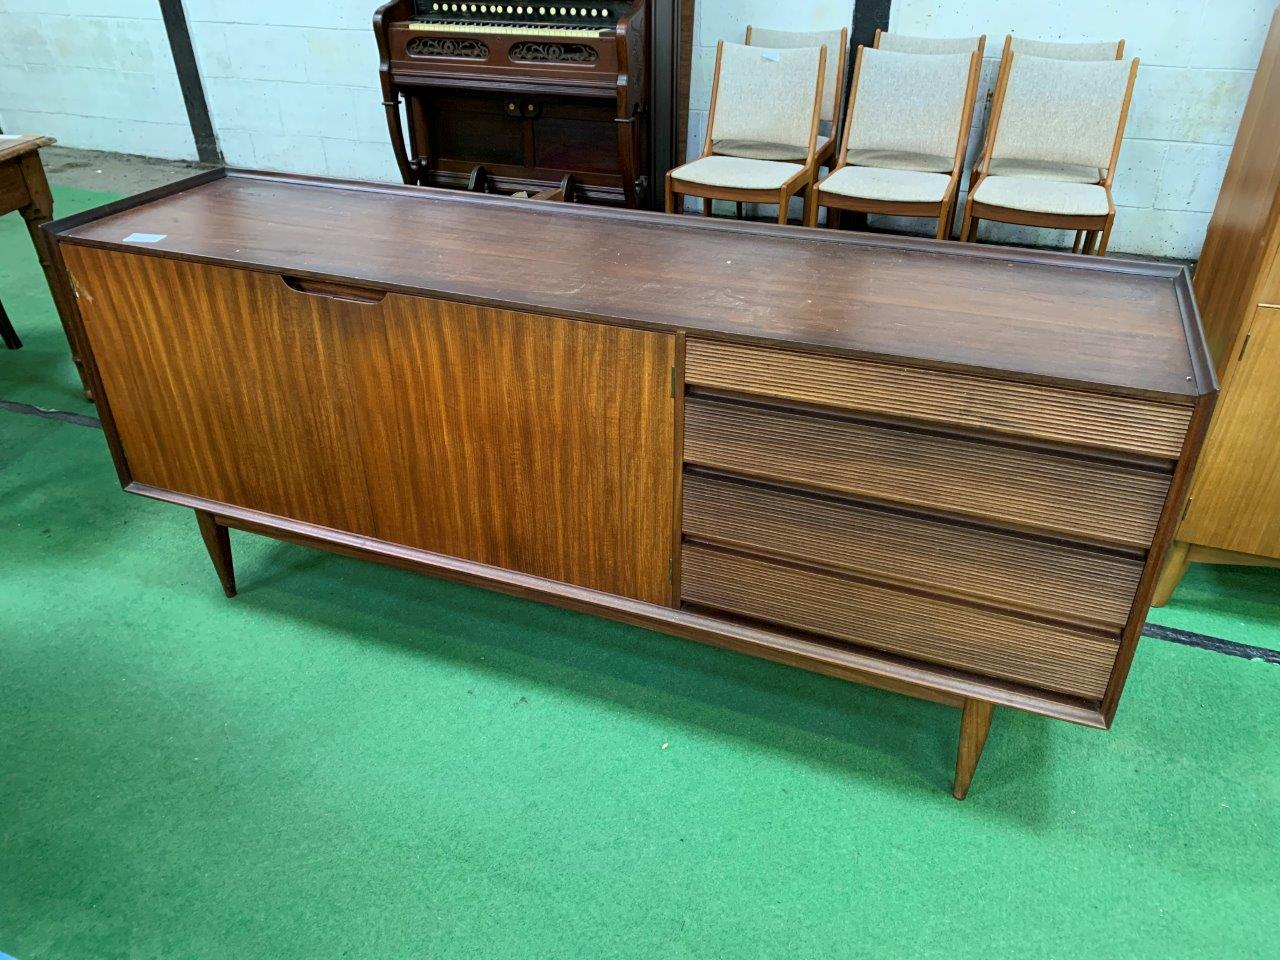 Lot 44 - 1950s teak sideboard with 2 cupboards and 4 graduated drawers.